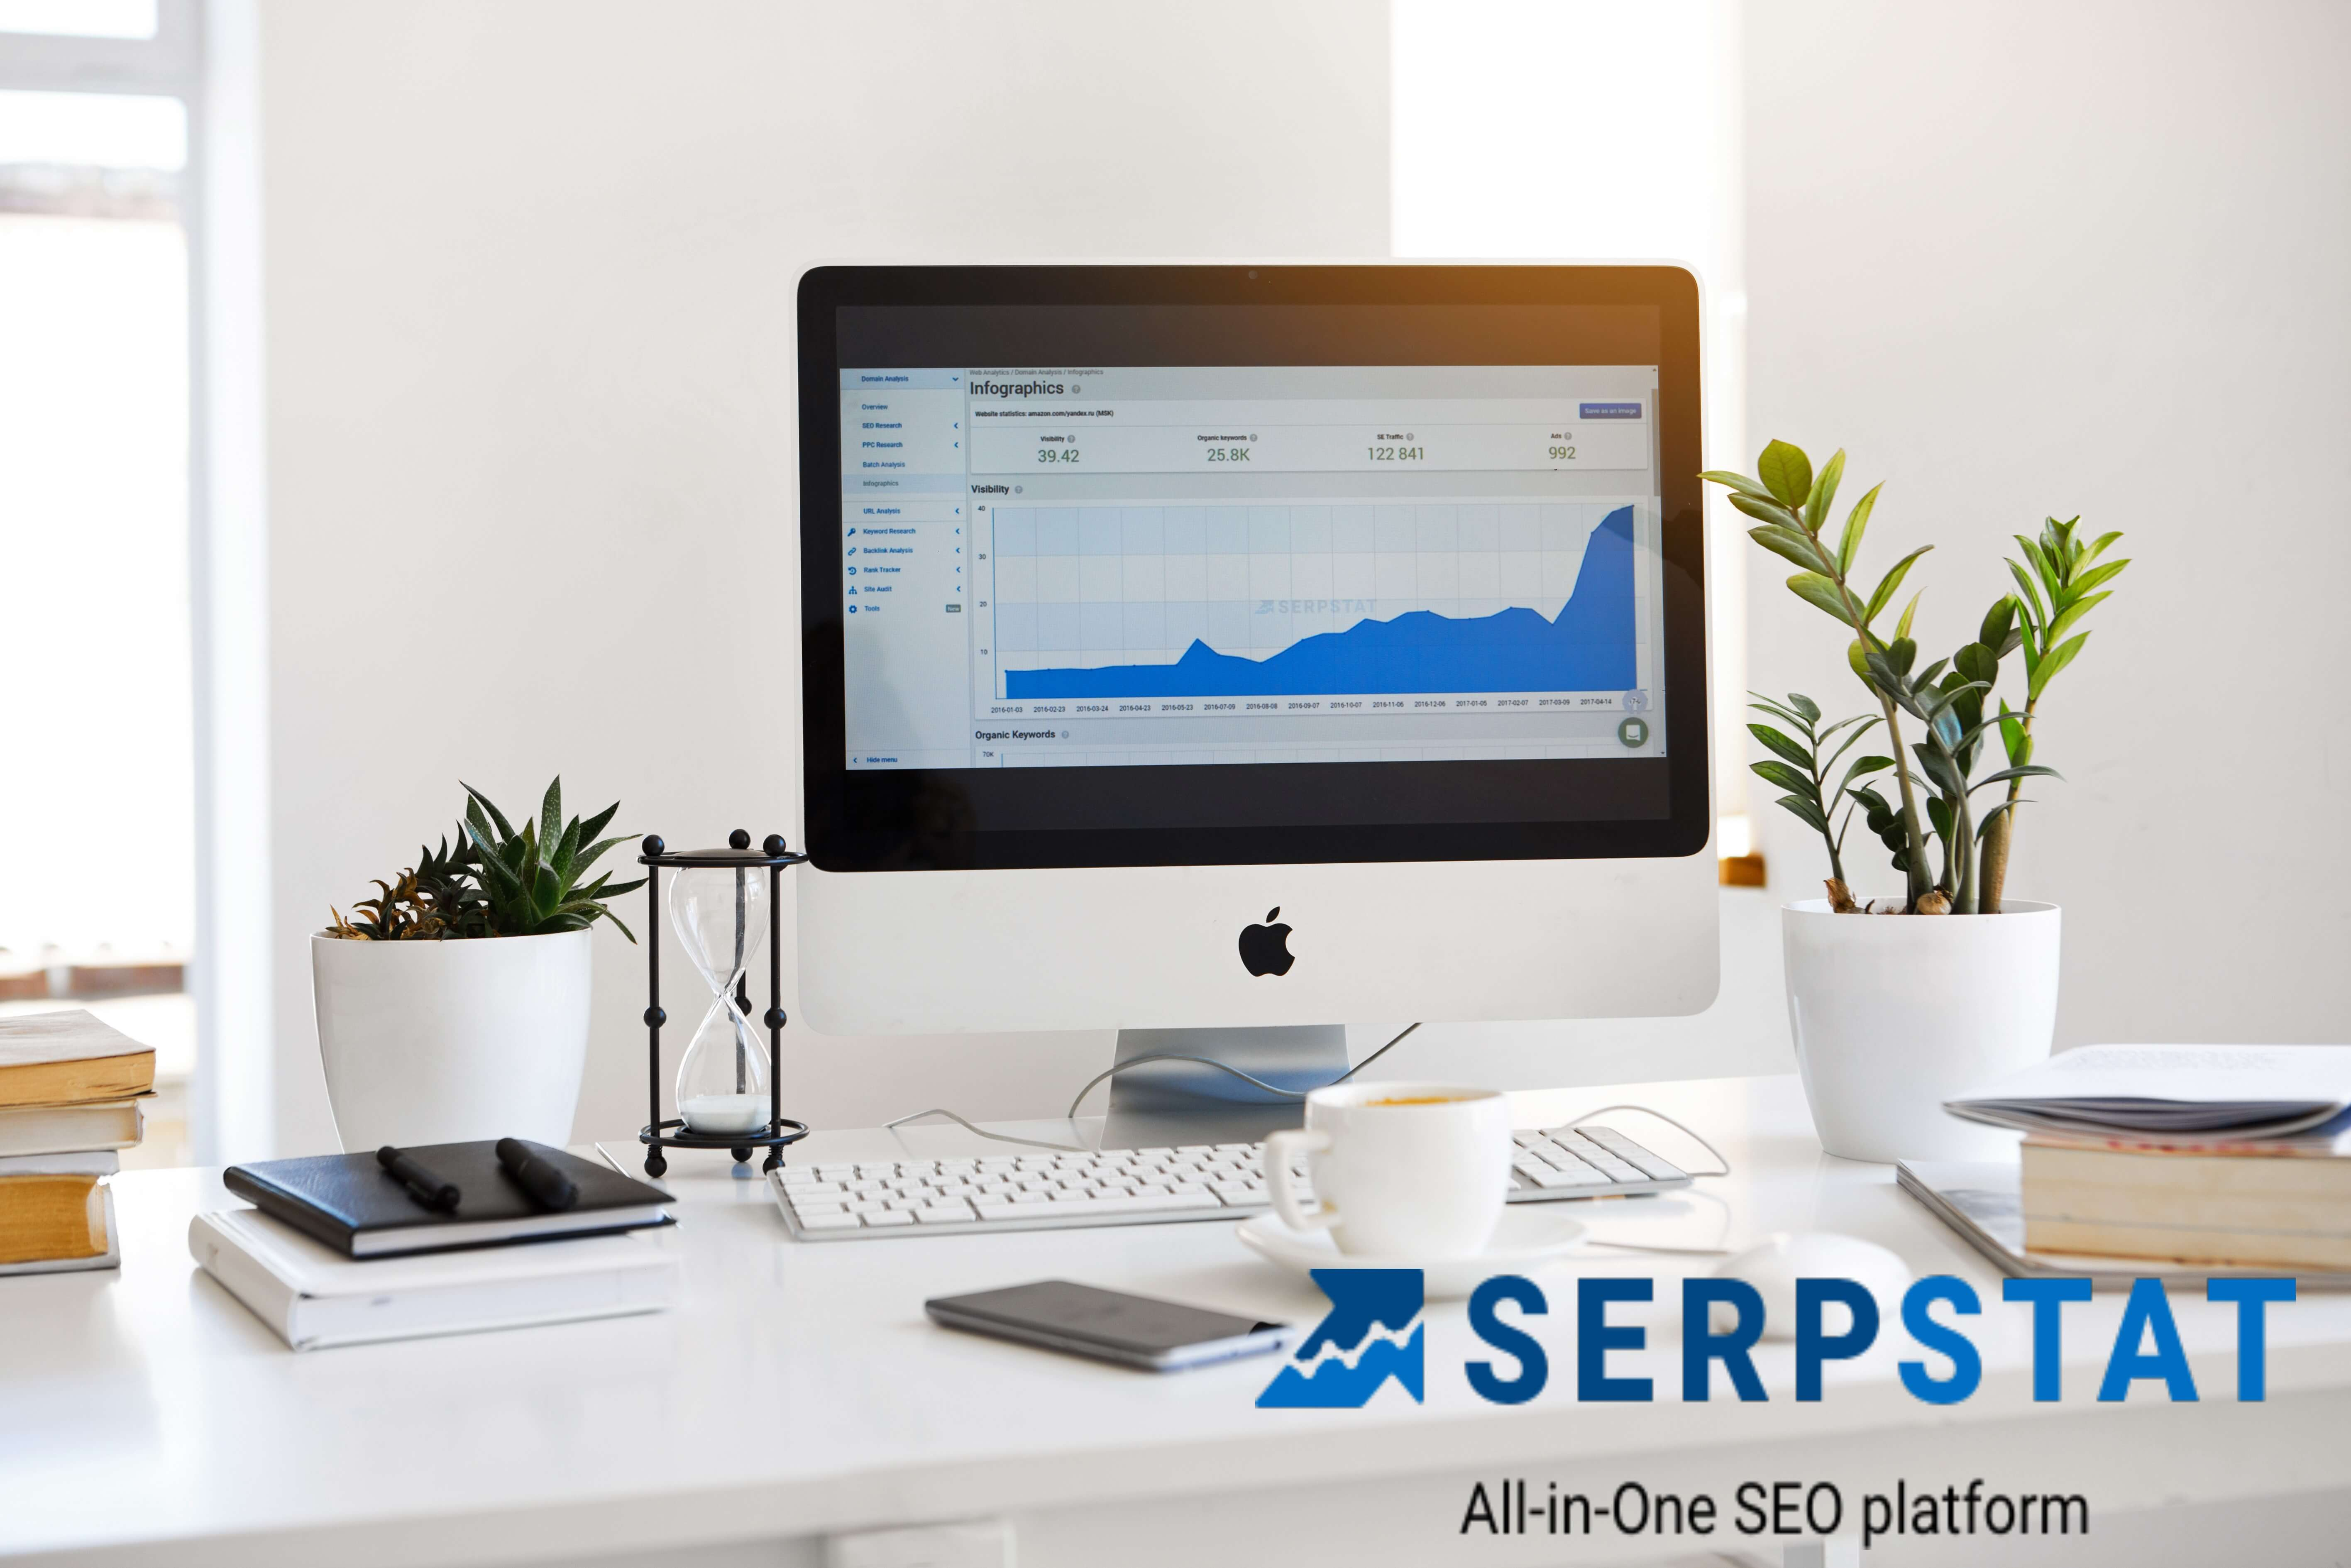 Serpstat Review: Powerful Tool for SEO, PPC & Content Marketing